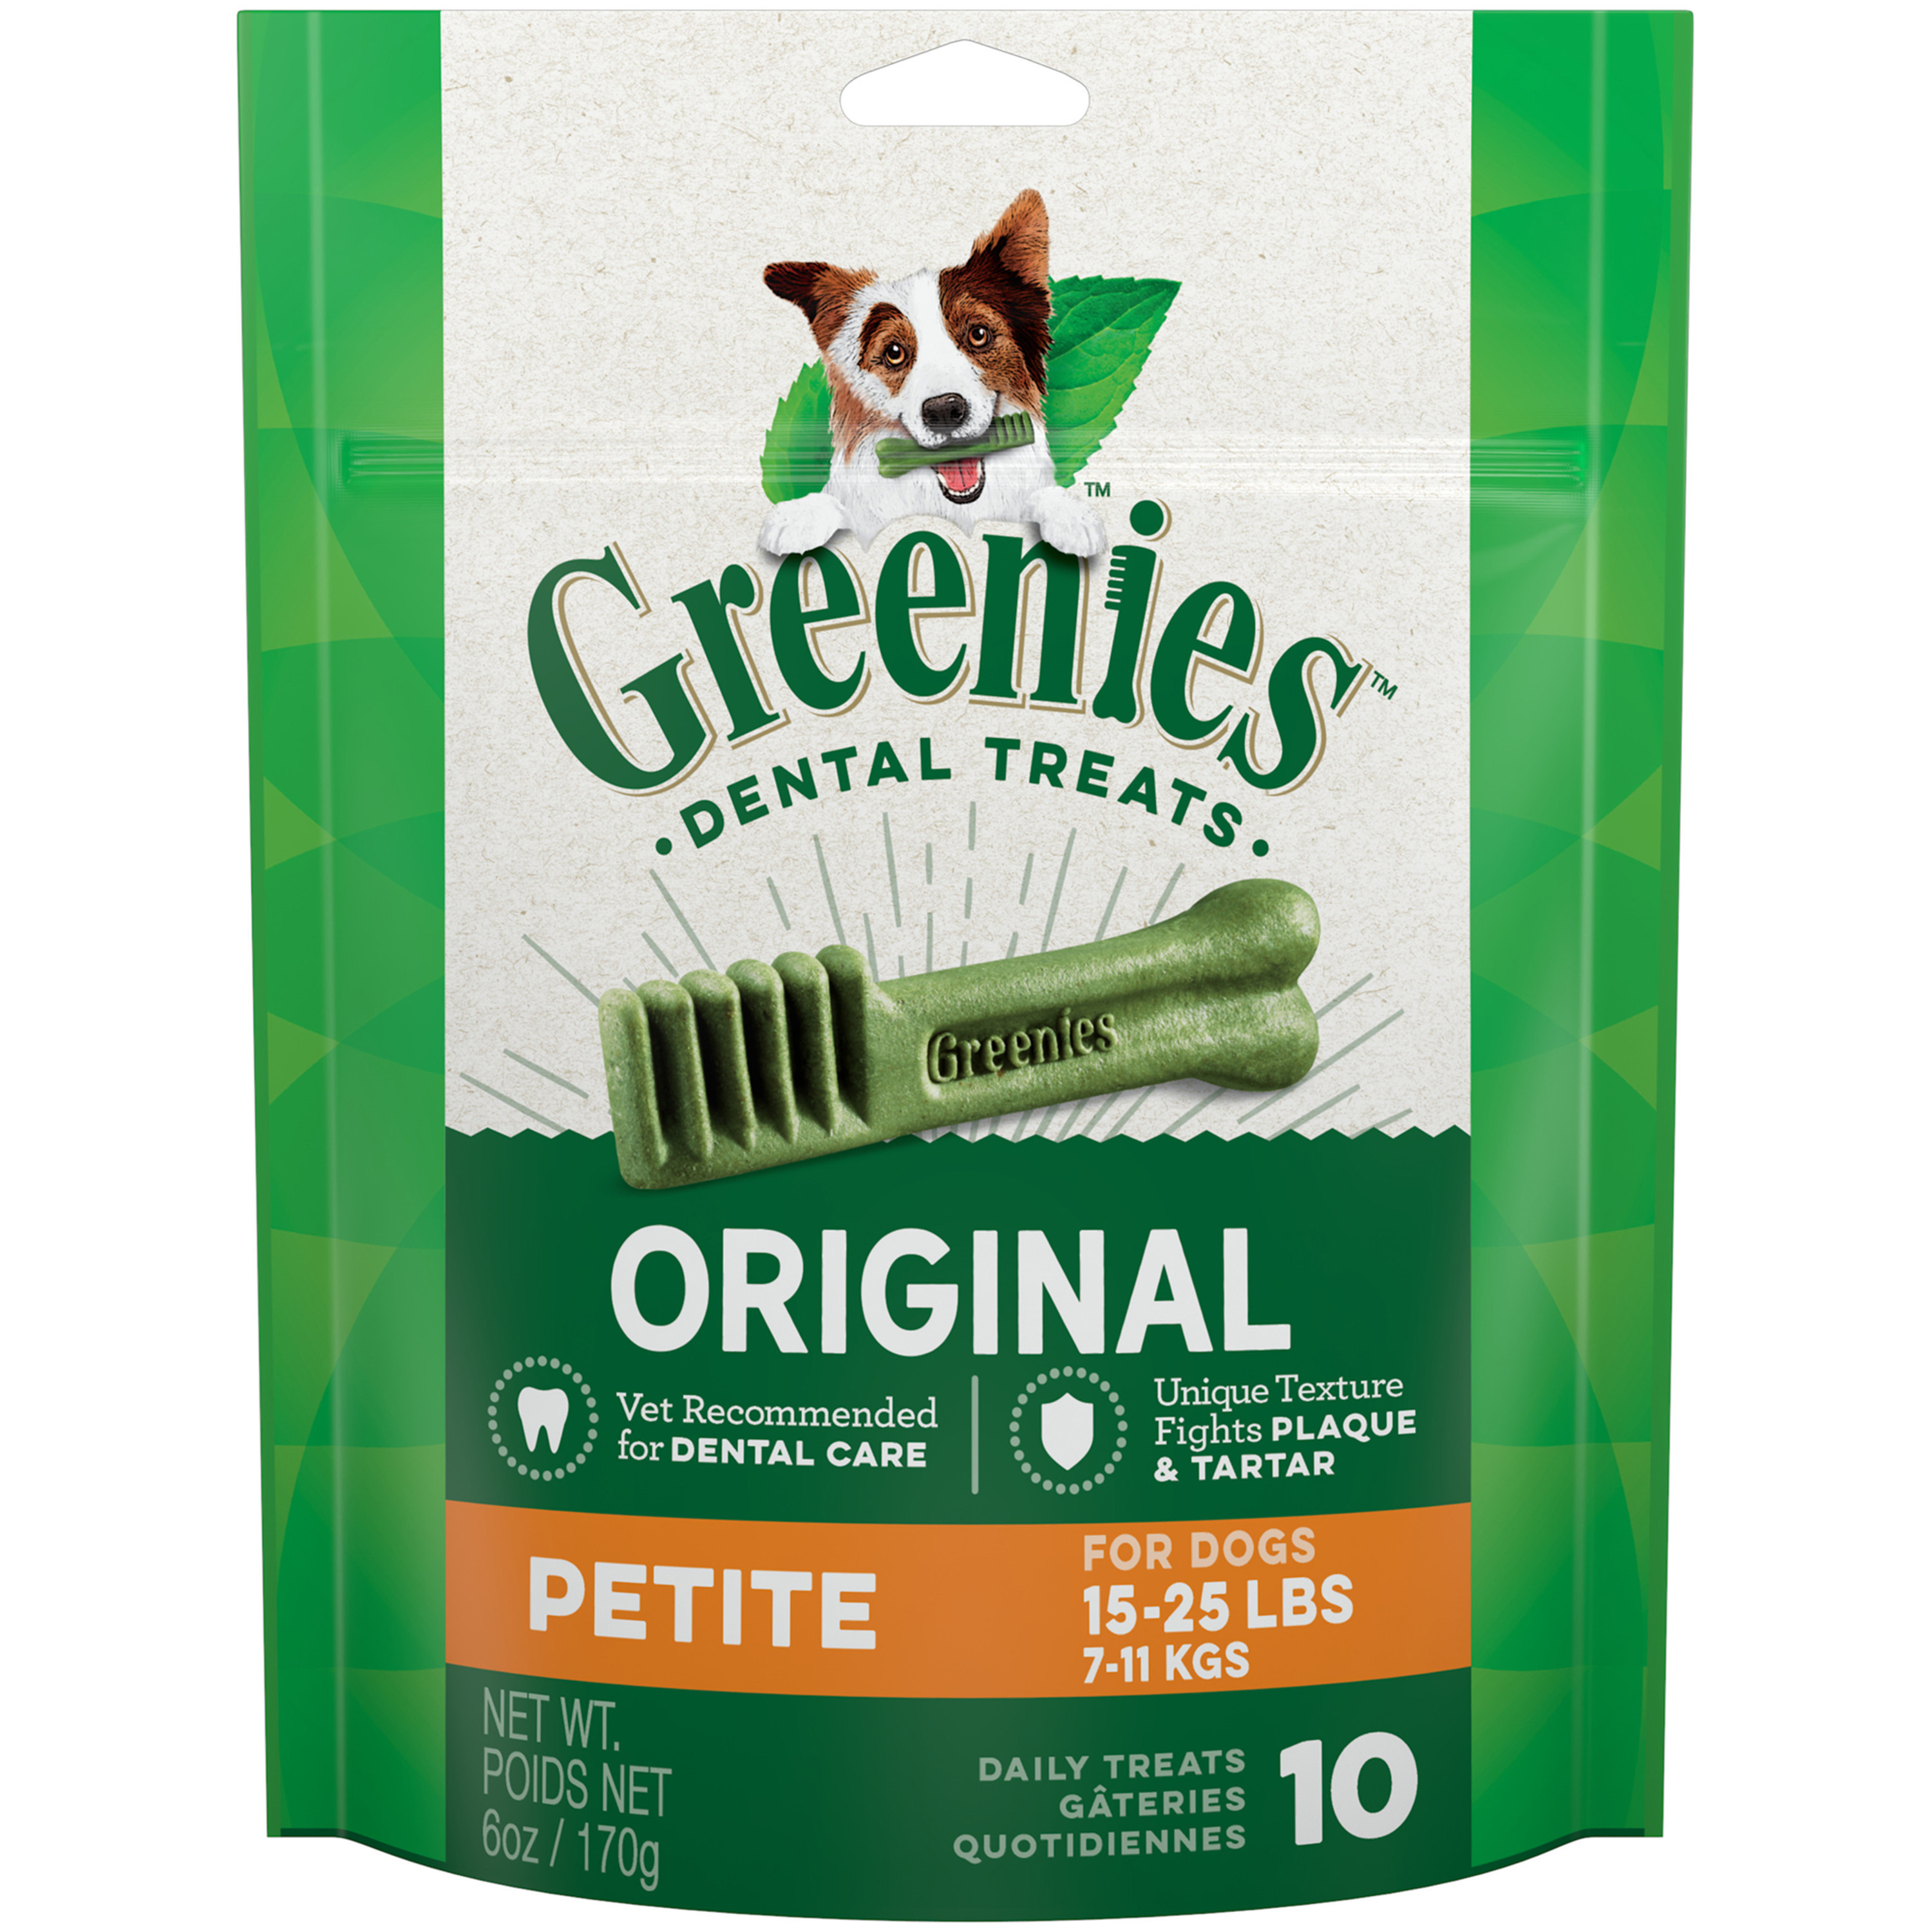 GREENIES Original Petite Dental Dog Treats, 6 oz. Pack (10 Treats)